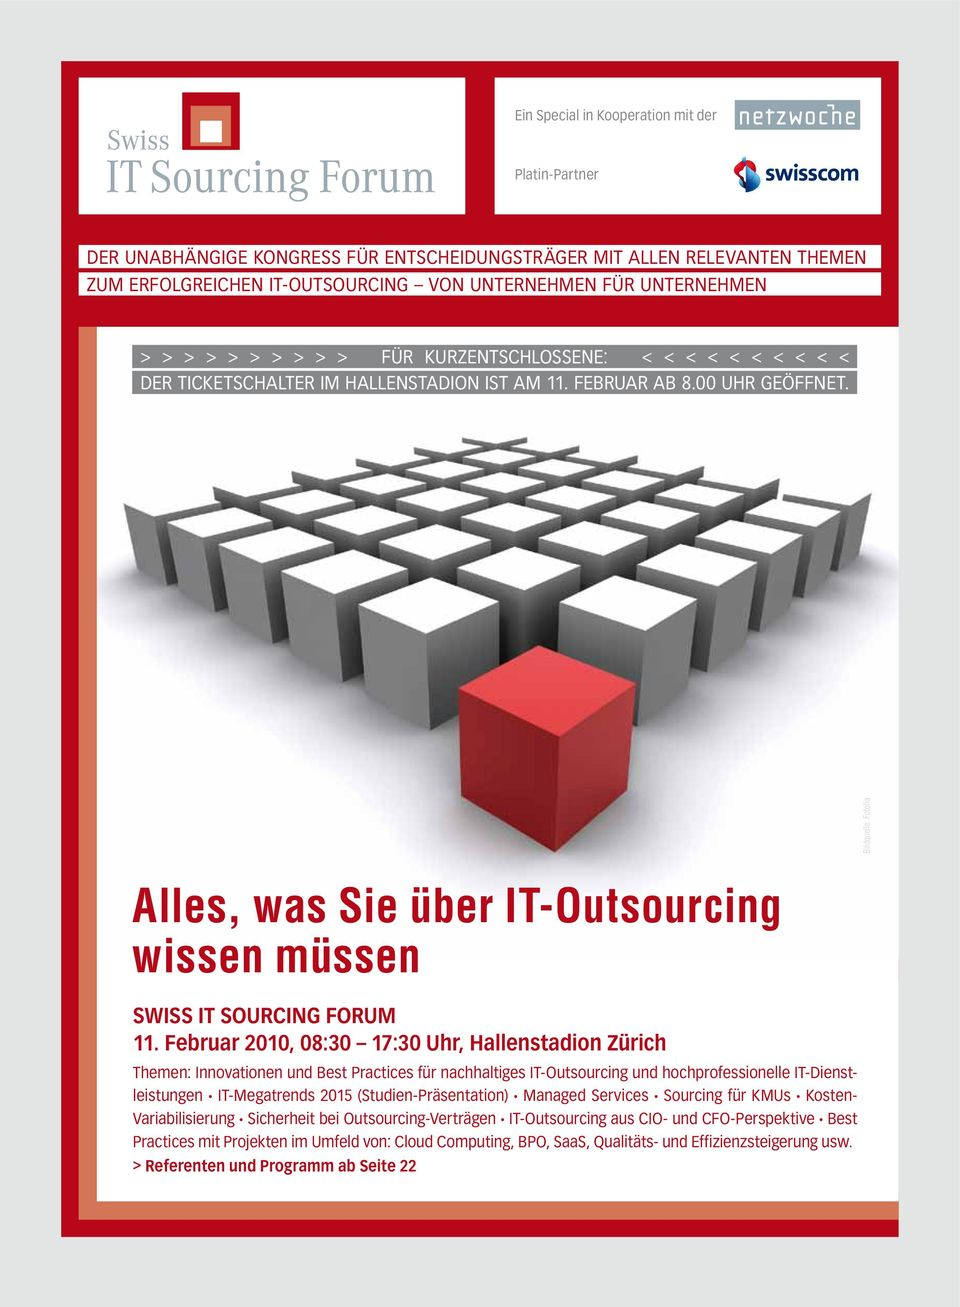 Bildquelle: Fotolia Alles, was Sie über IT-Outsourcing wissen müssen swiss It sourcing forum 11.